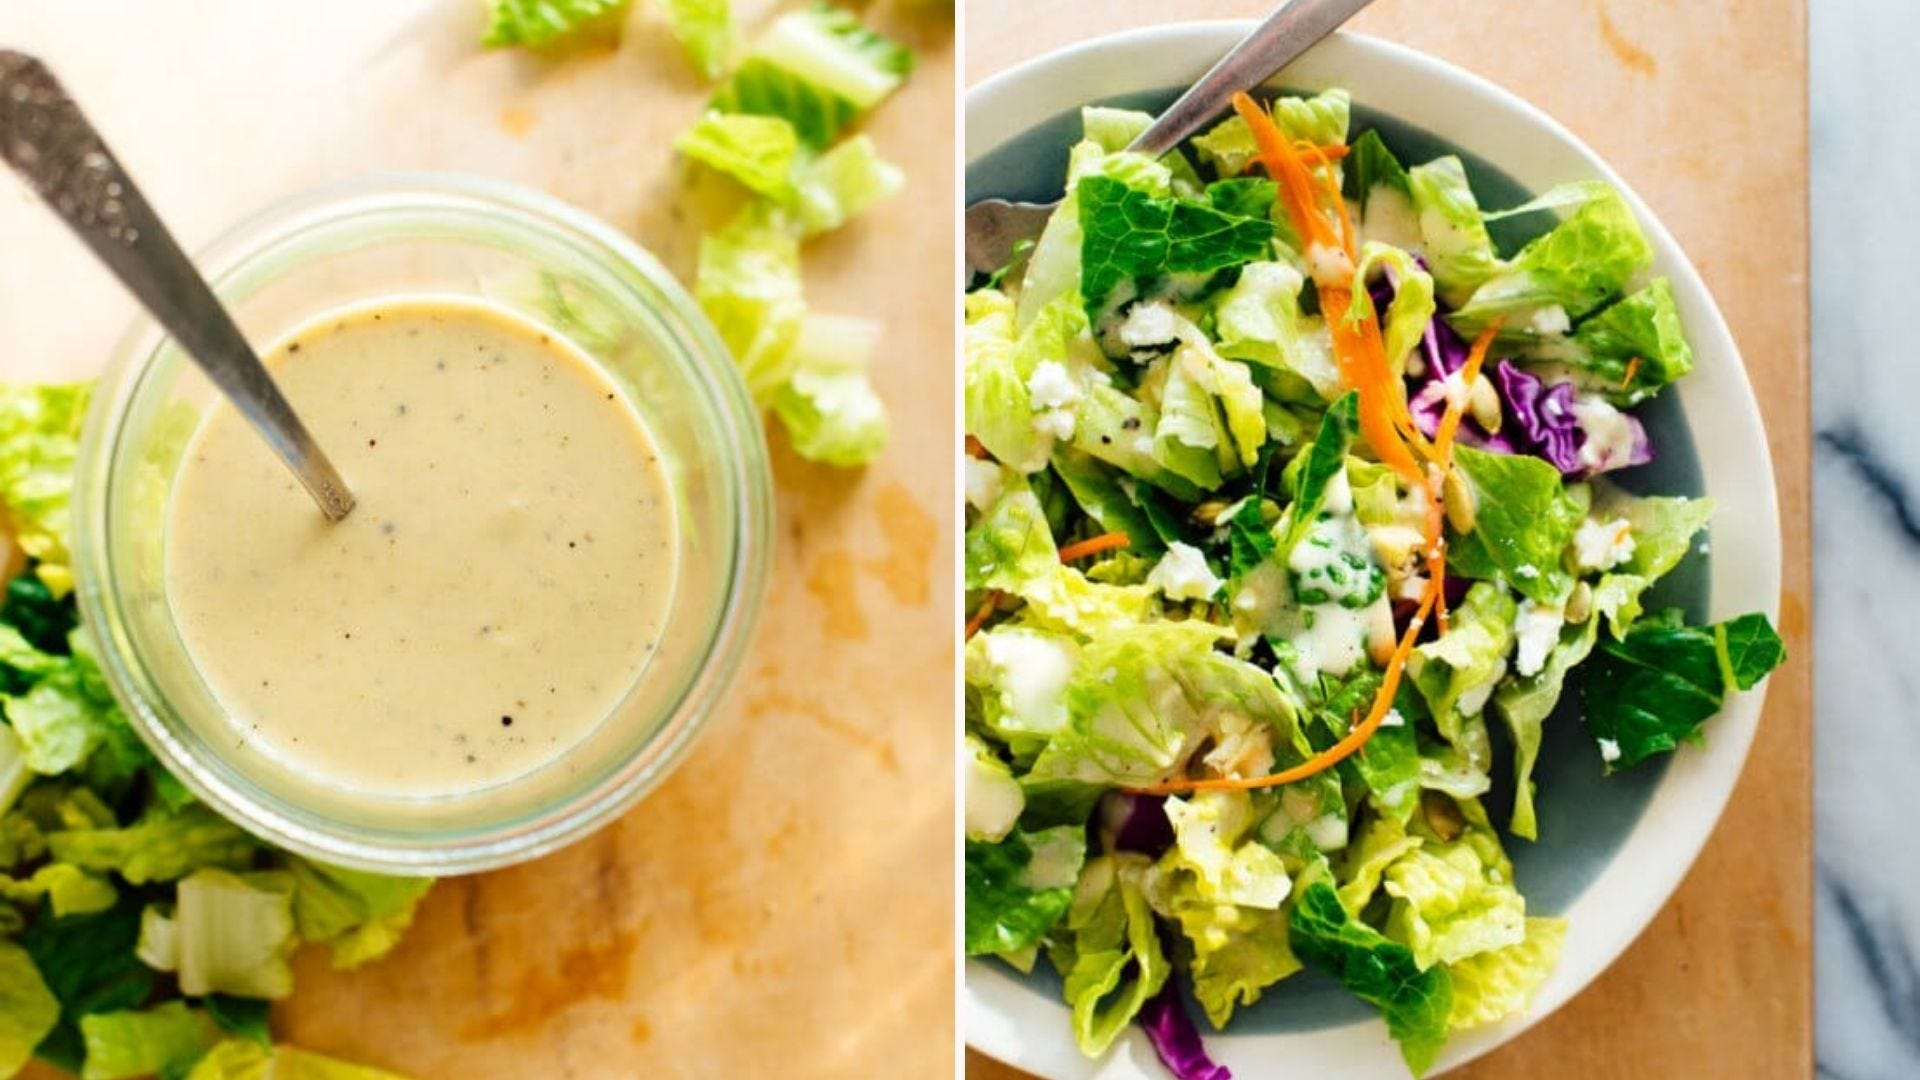 A spoon in a container full of Sunshine dressing and a salad with some drizzled on top.